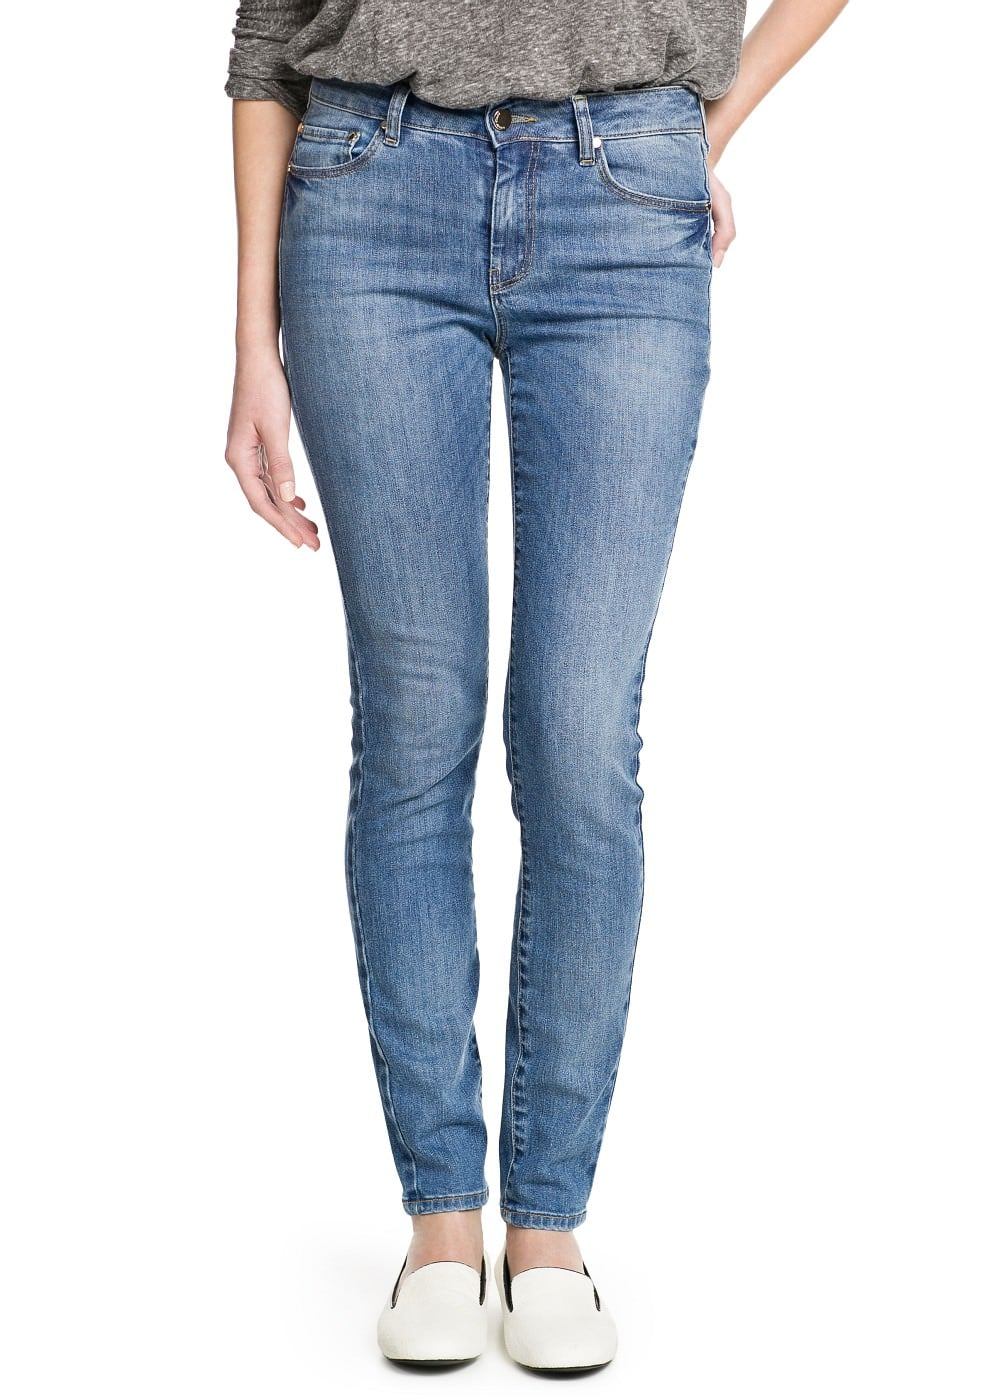 High waist london jeans | VIOLETA BY MANGO